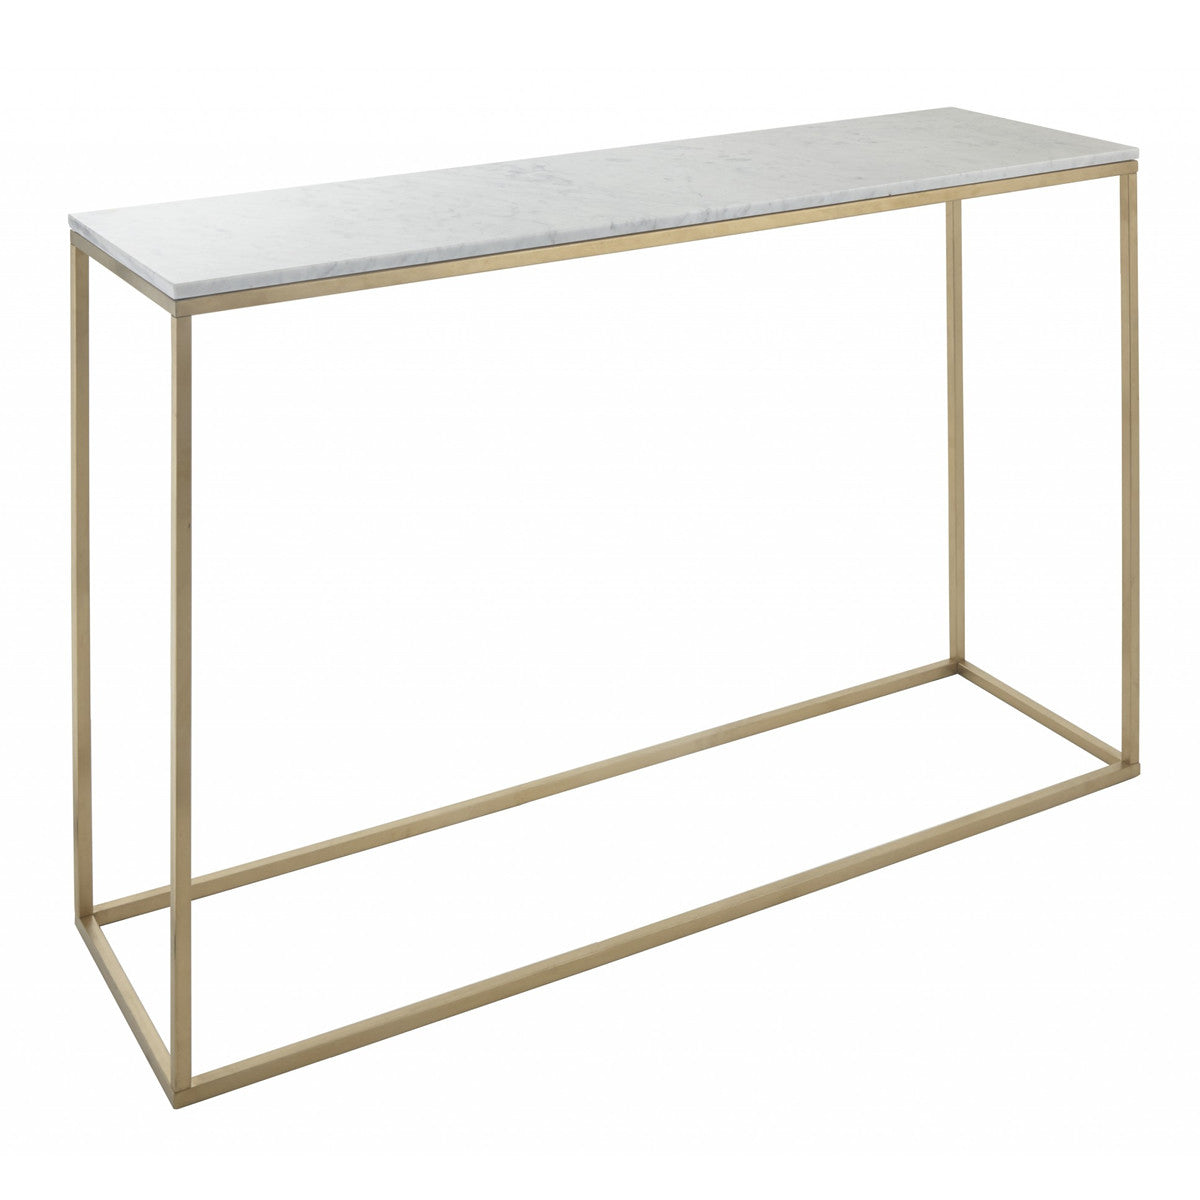 Rv astley faceby square gold console table shropshire design - Rv side tables ...